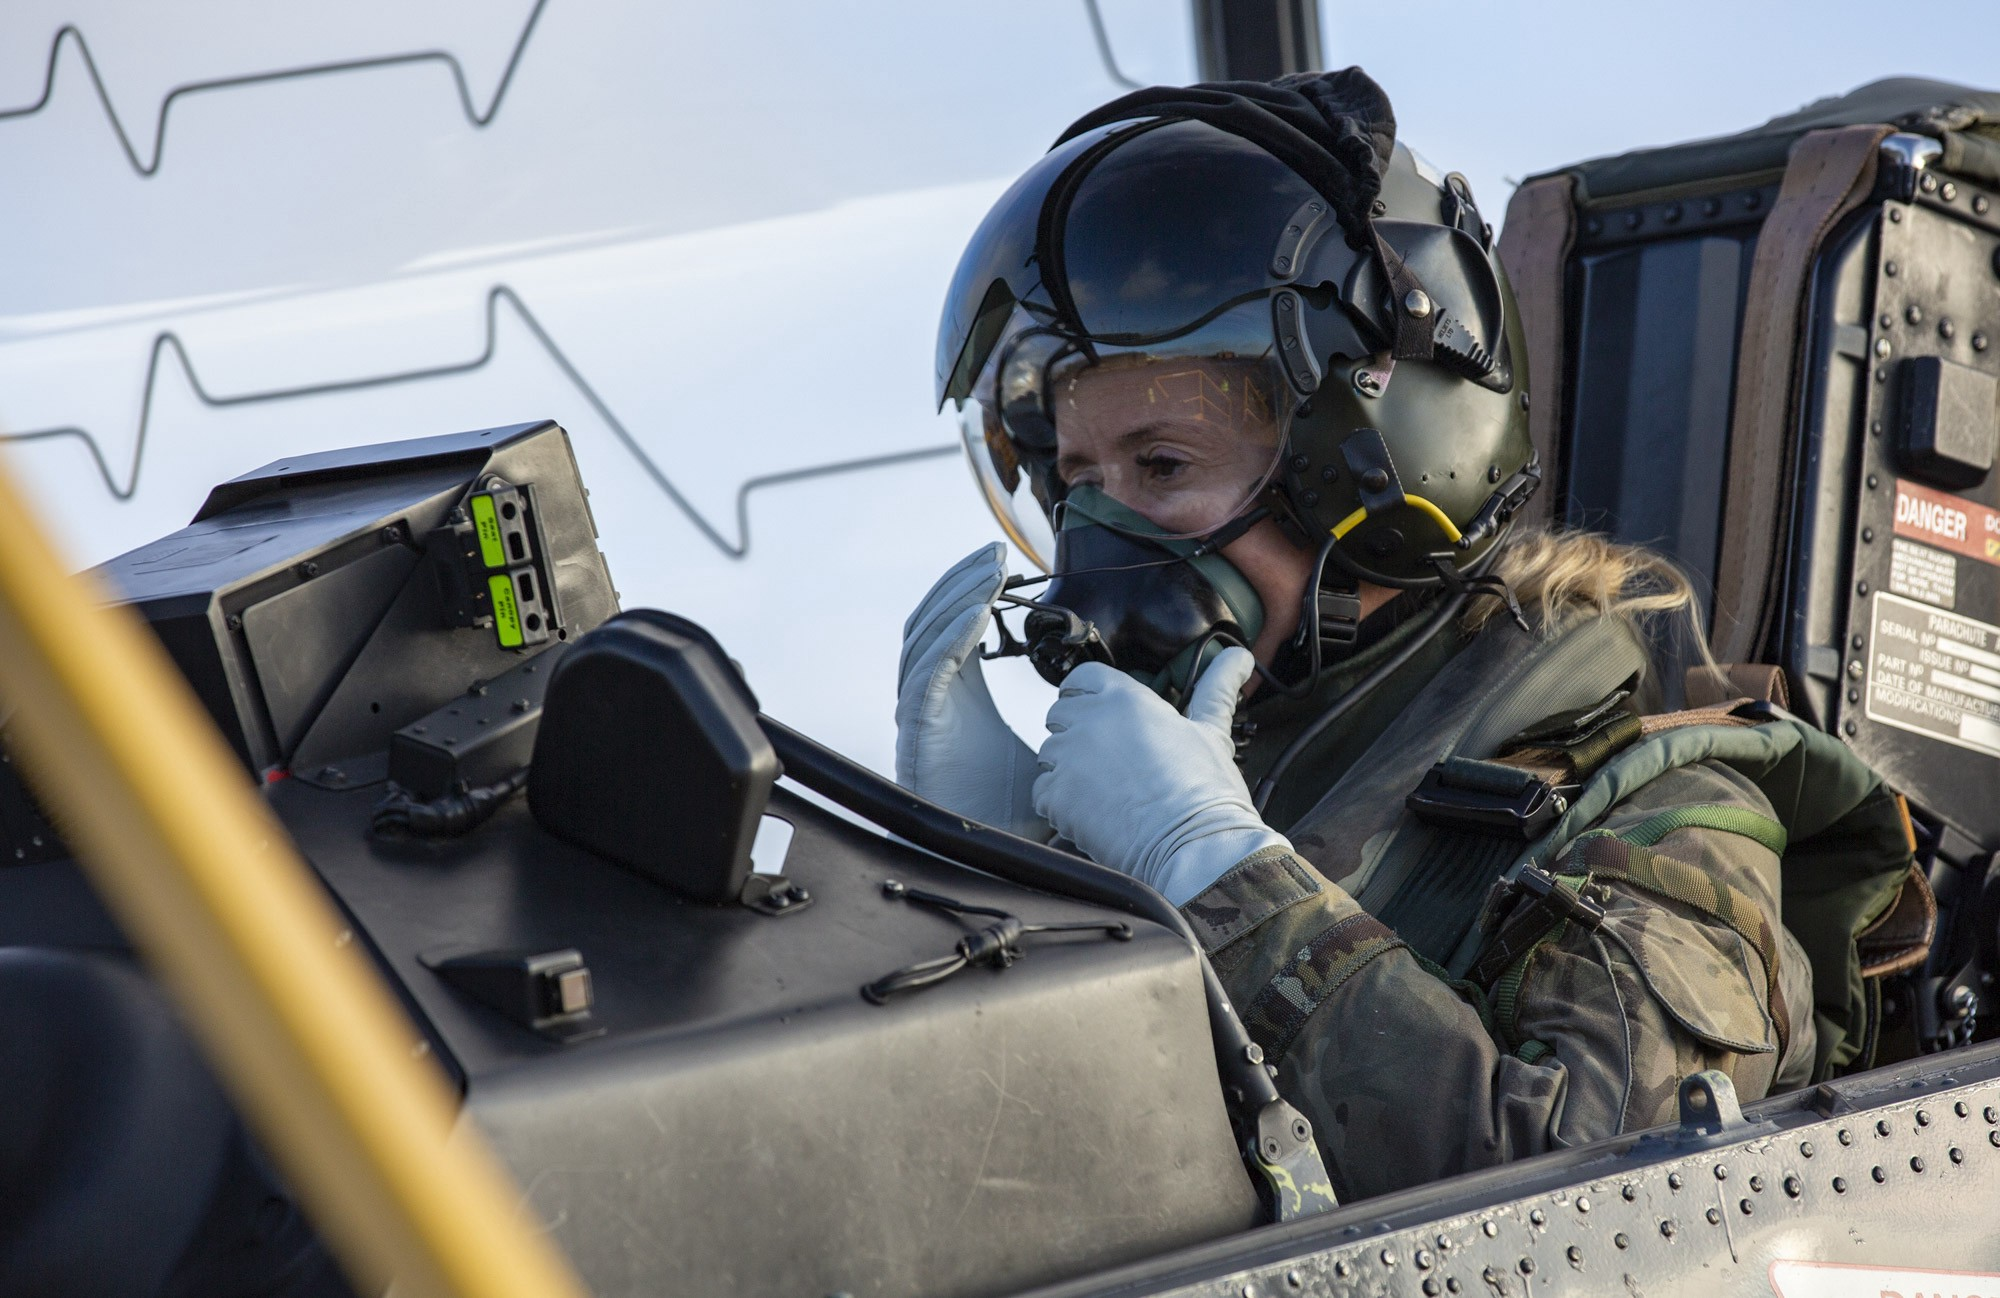 A woman in a flight suit and helmet sits in an RAF aircraft